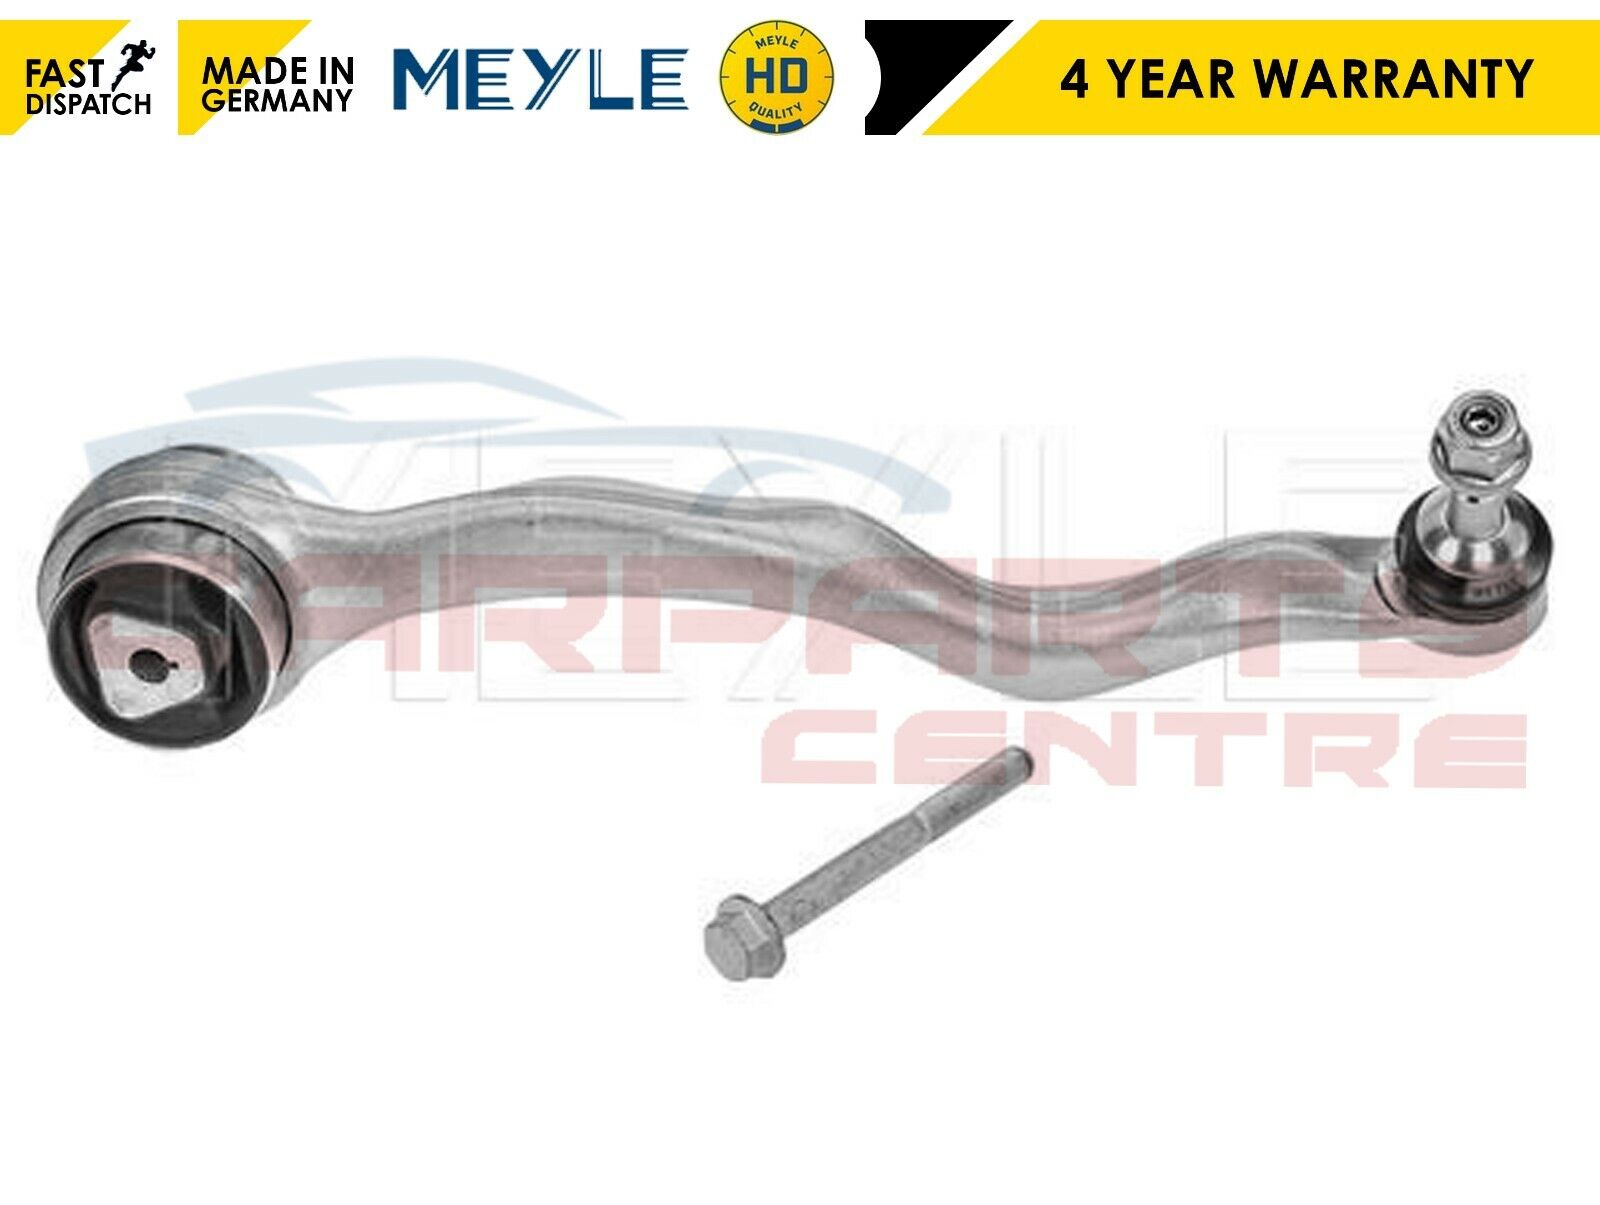 FOR BMW F20 F21 F30 F31 F32 F32 FRONT LOWER REAR LEFT RIGHT SUSPENSION ARMS